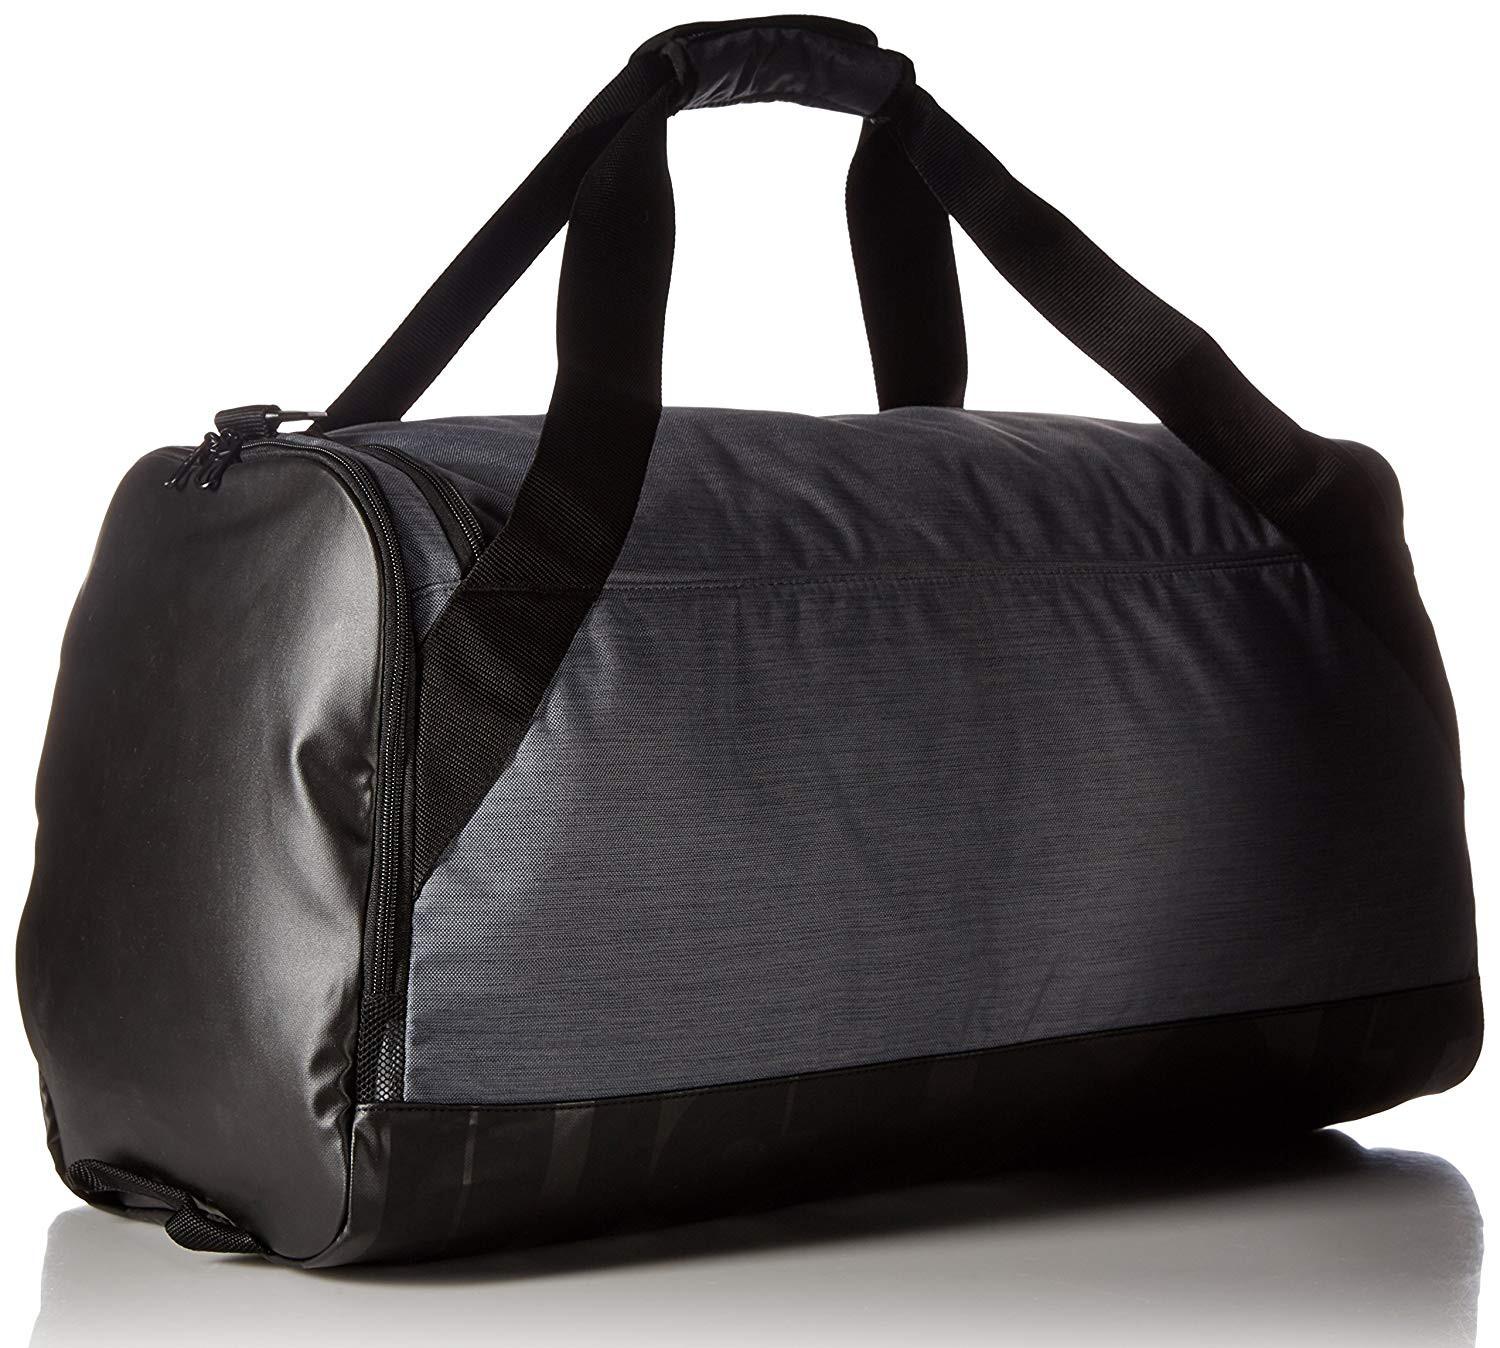 Bolsa De Deporte Nike Encantador Amazon Nike Brasilia Small Training Duffel Bag Flint Grey Of 40  Único Bolsa De Deporte Nike